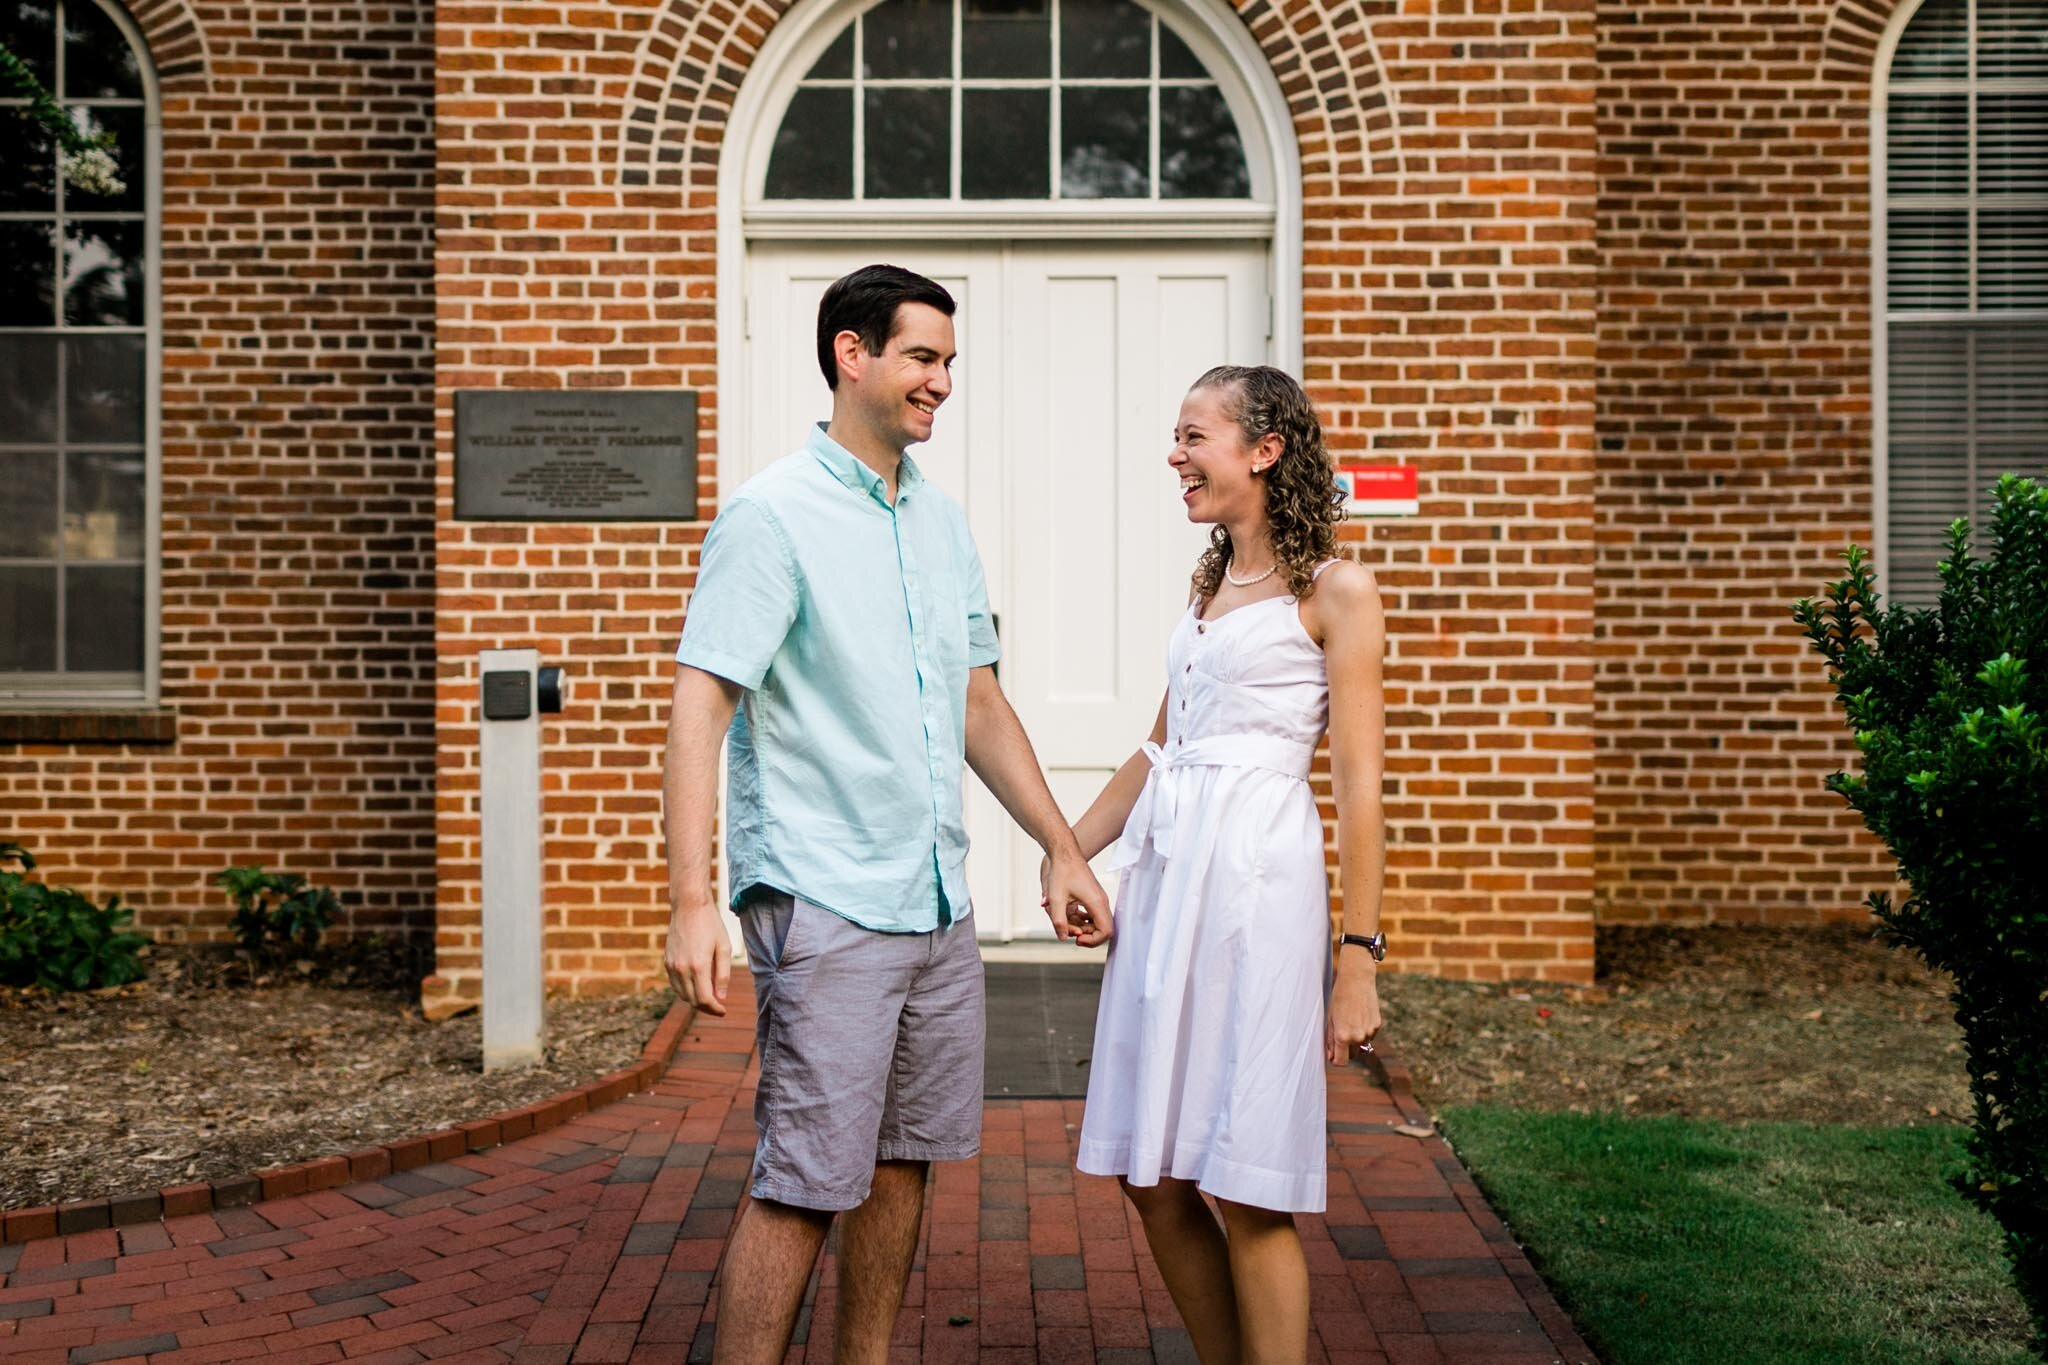 Raleigh Engagement Photographer | NC State University | By G. Lin Photography | Couple laughing together in front of building